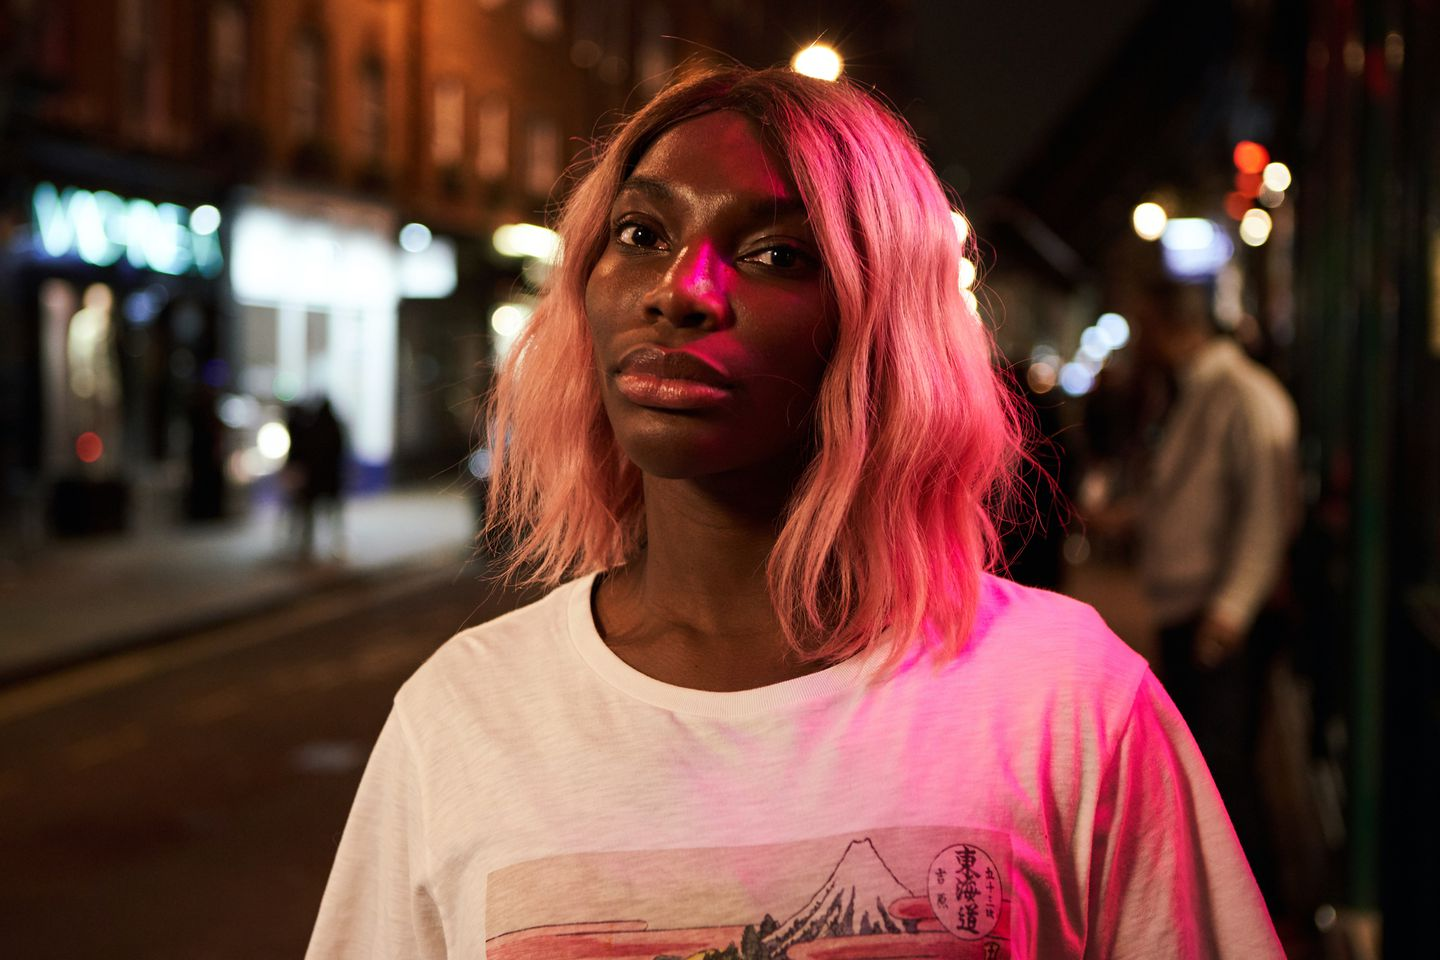 Michaela Coel's 'I May Destroy You' Dares To Make You Feel Unsettled When Talking About Trauma